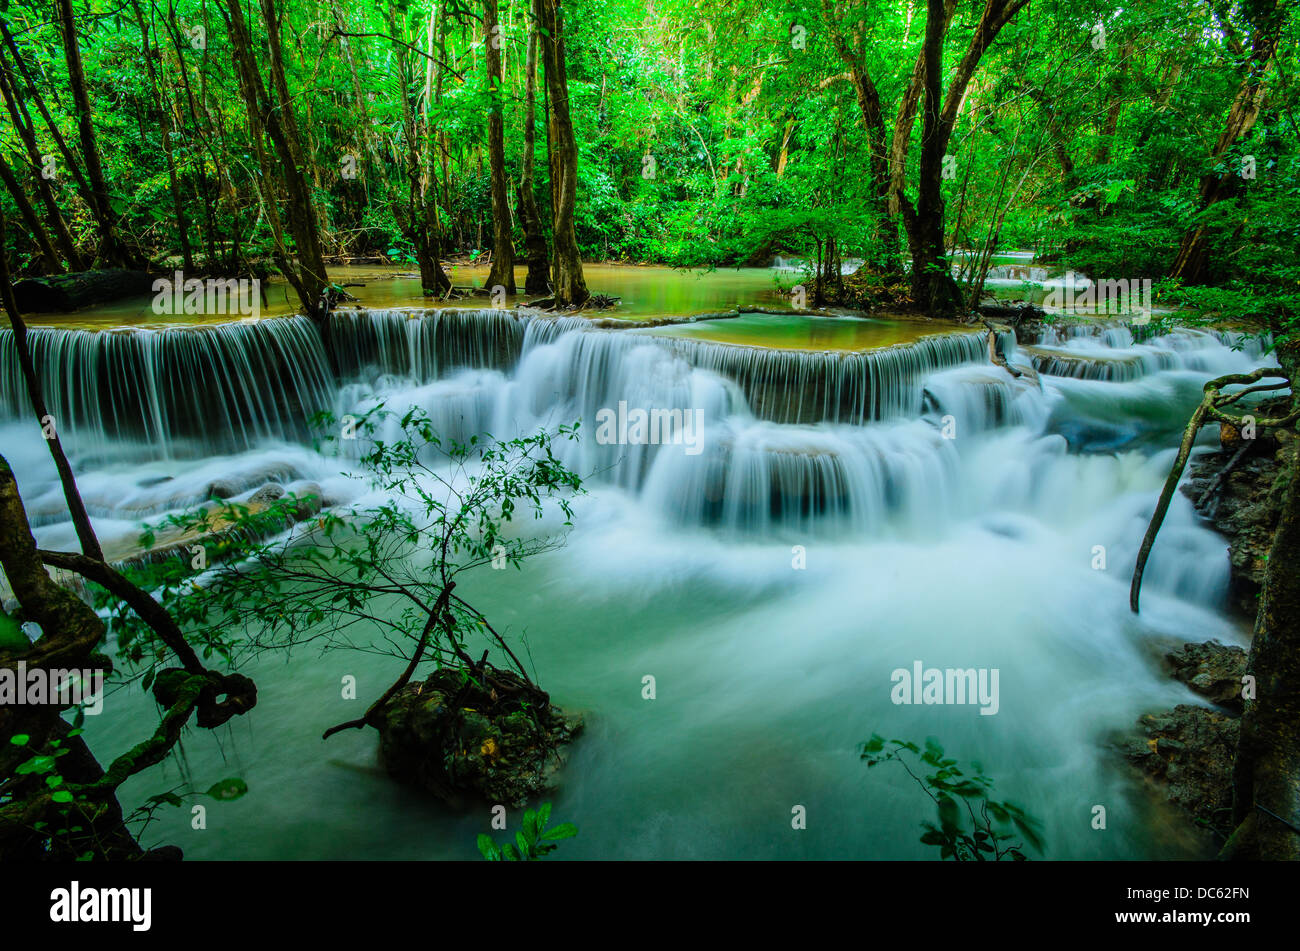 Natural Falls Wallpaper Free Download Huay Mae Khamin Paradise Waterfall Located In Deep Forest